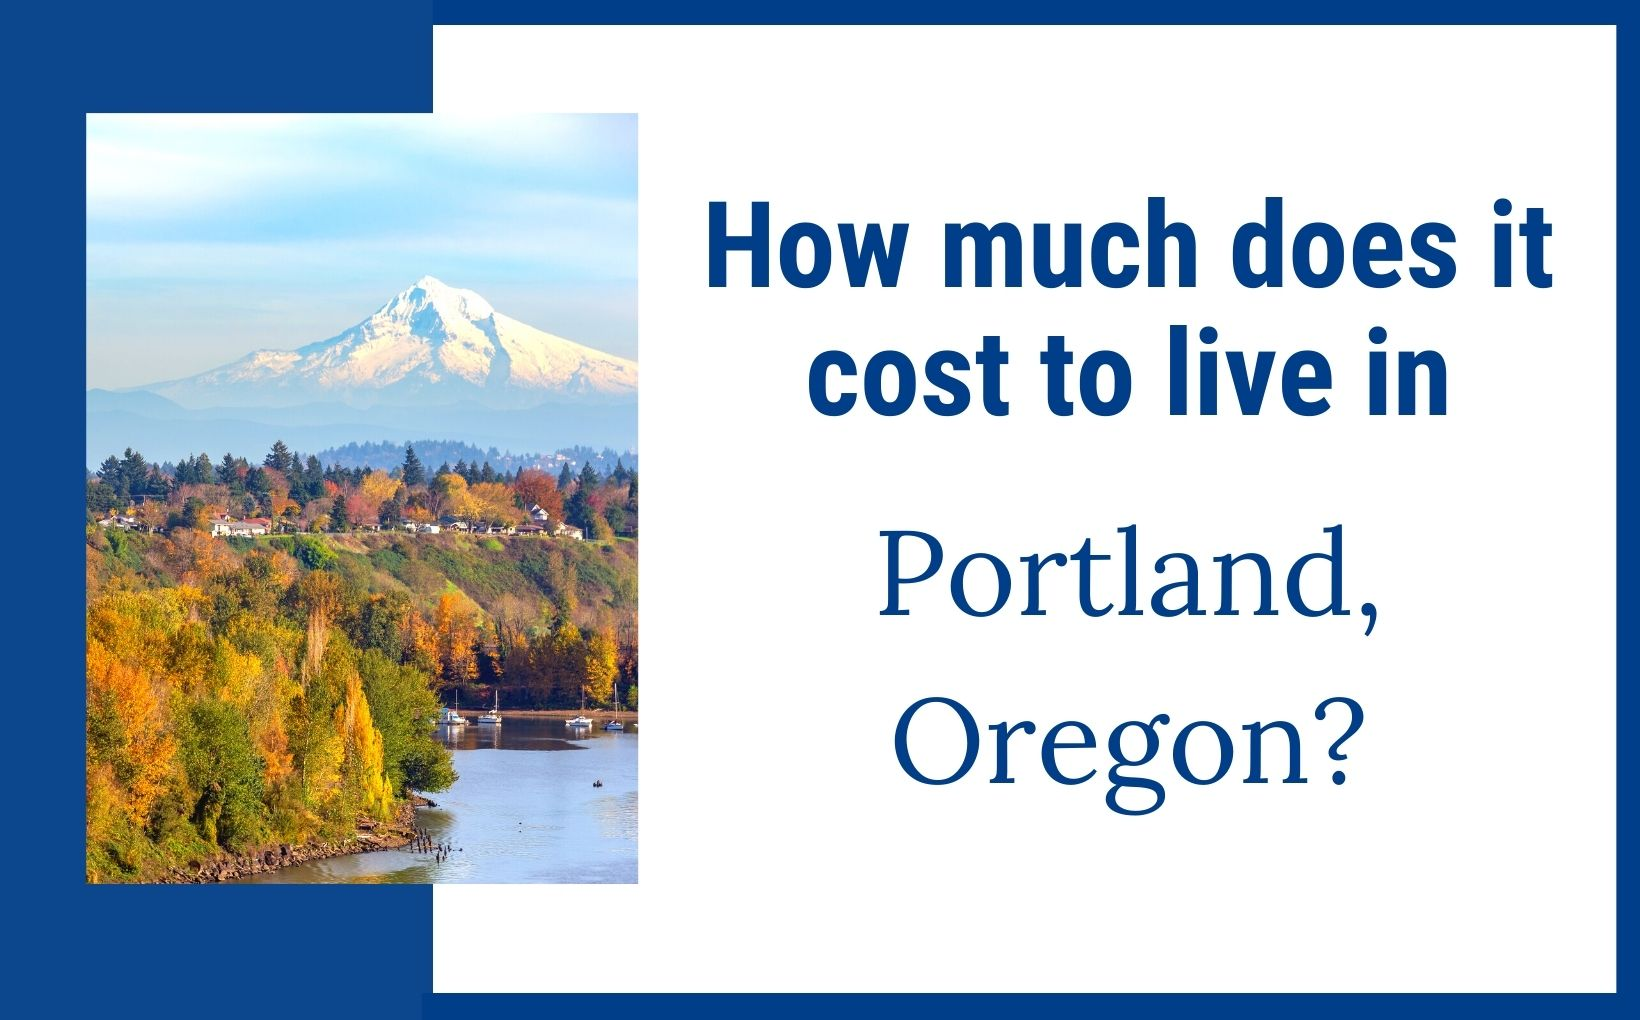 How much does it cost to live in Portland Oregon pins feature image